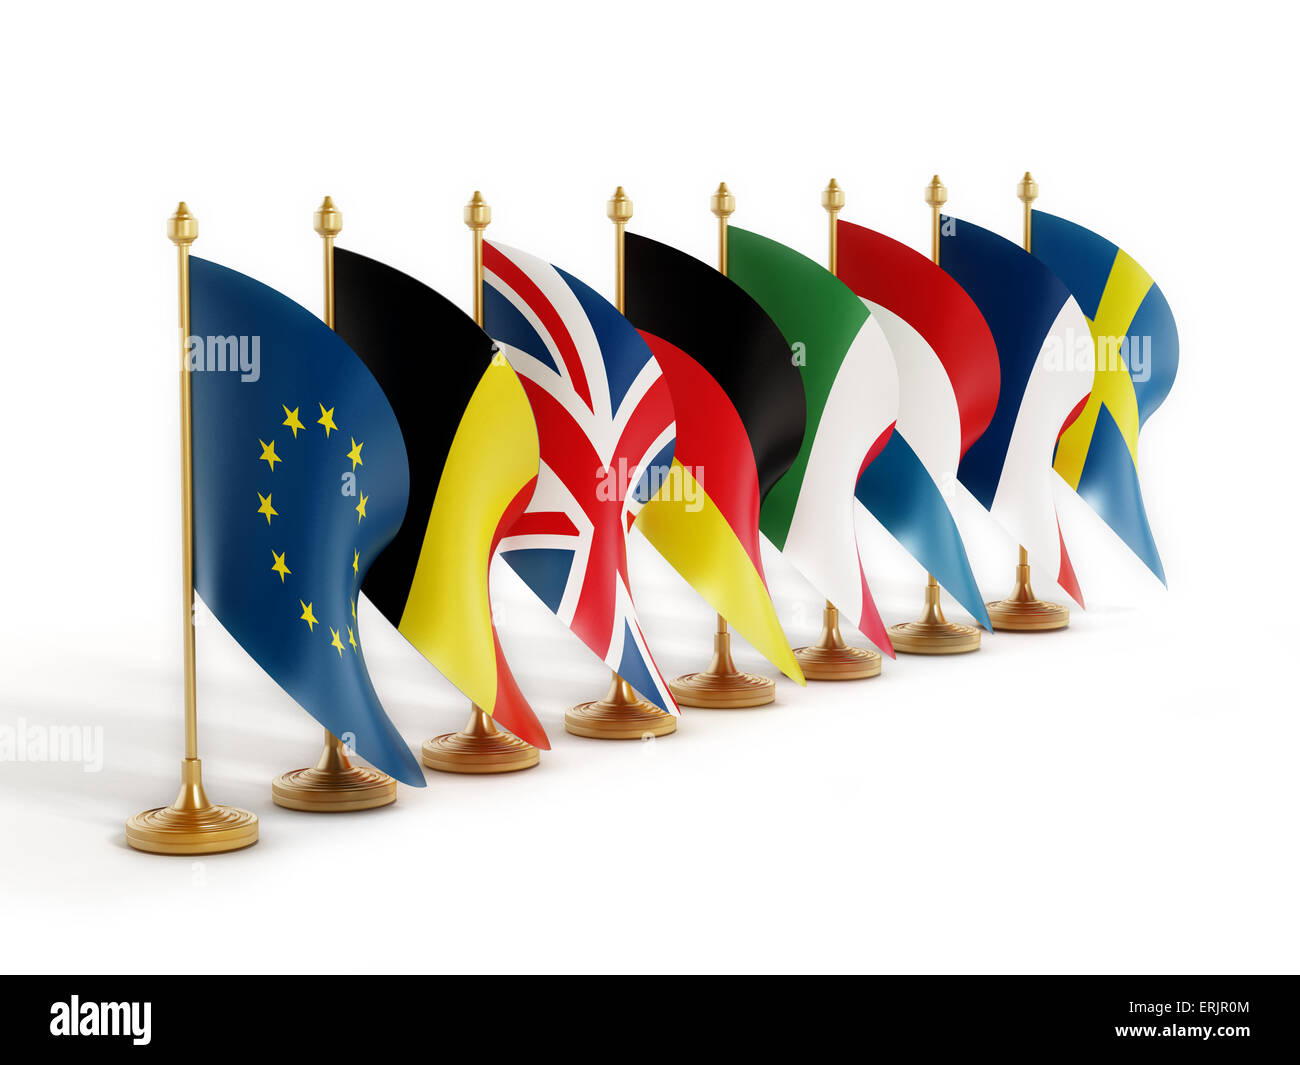 European Union Founder Country Flags isolated on white background. - Stock Image